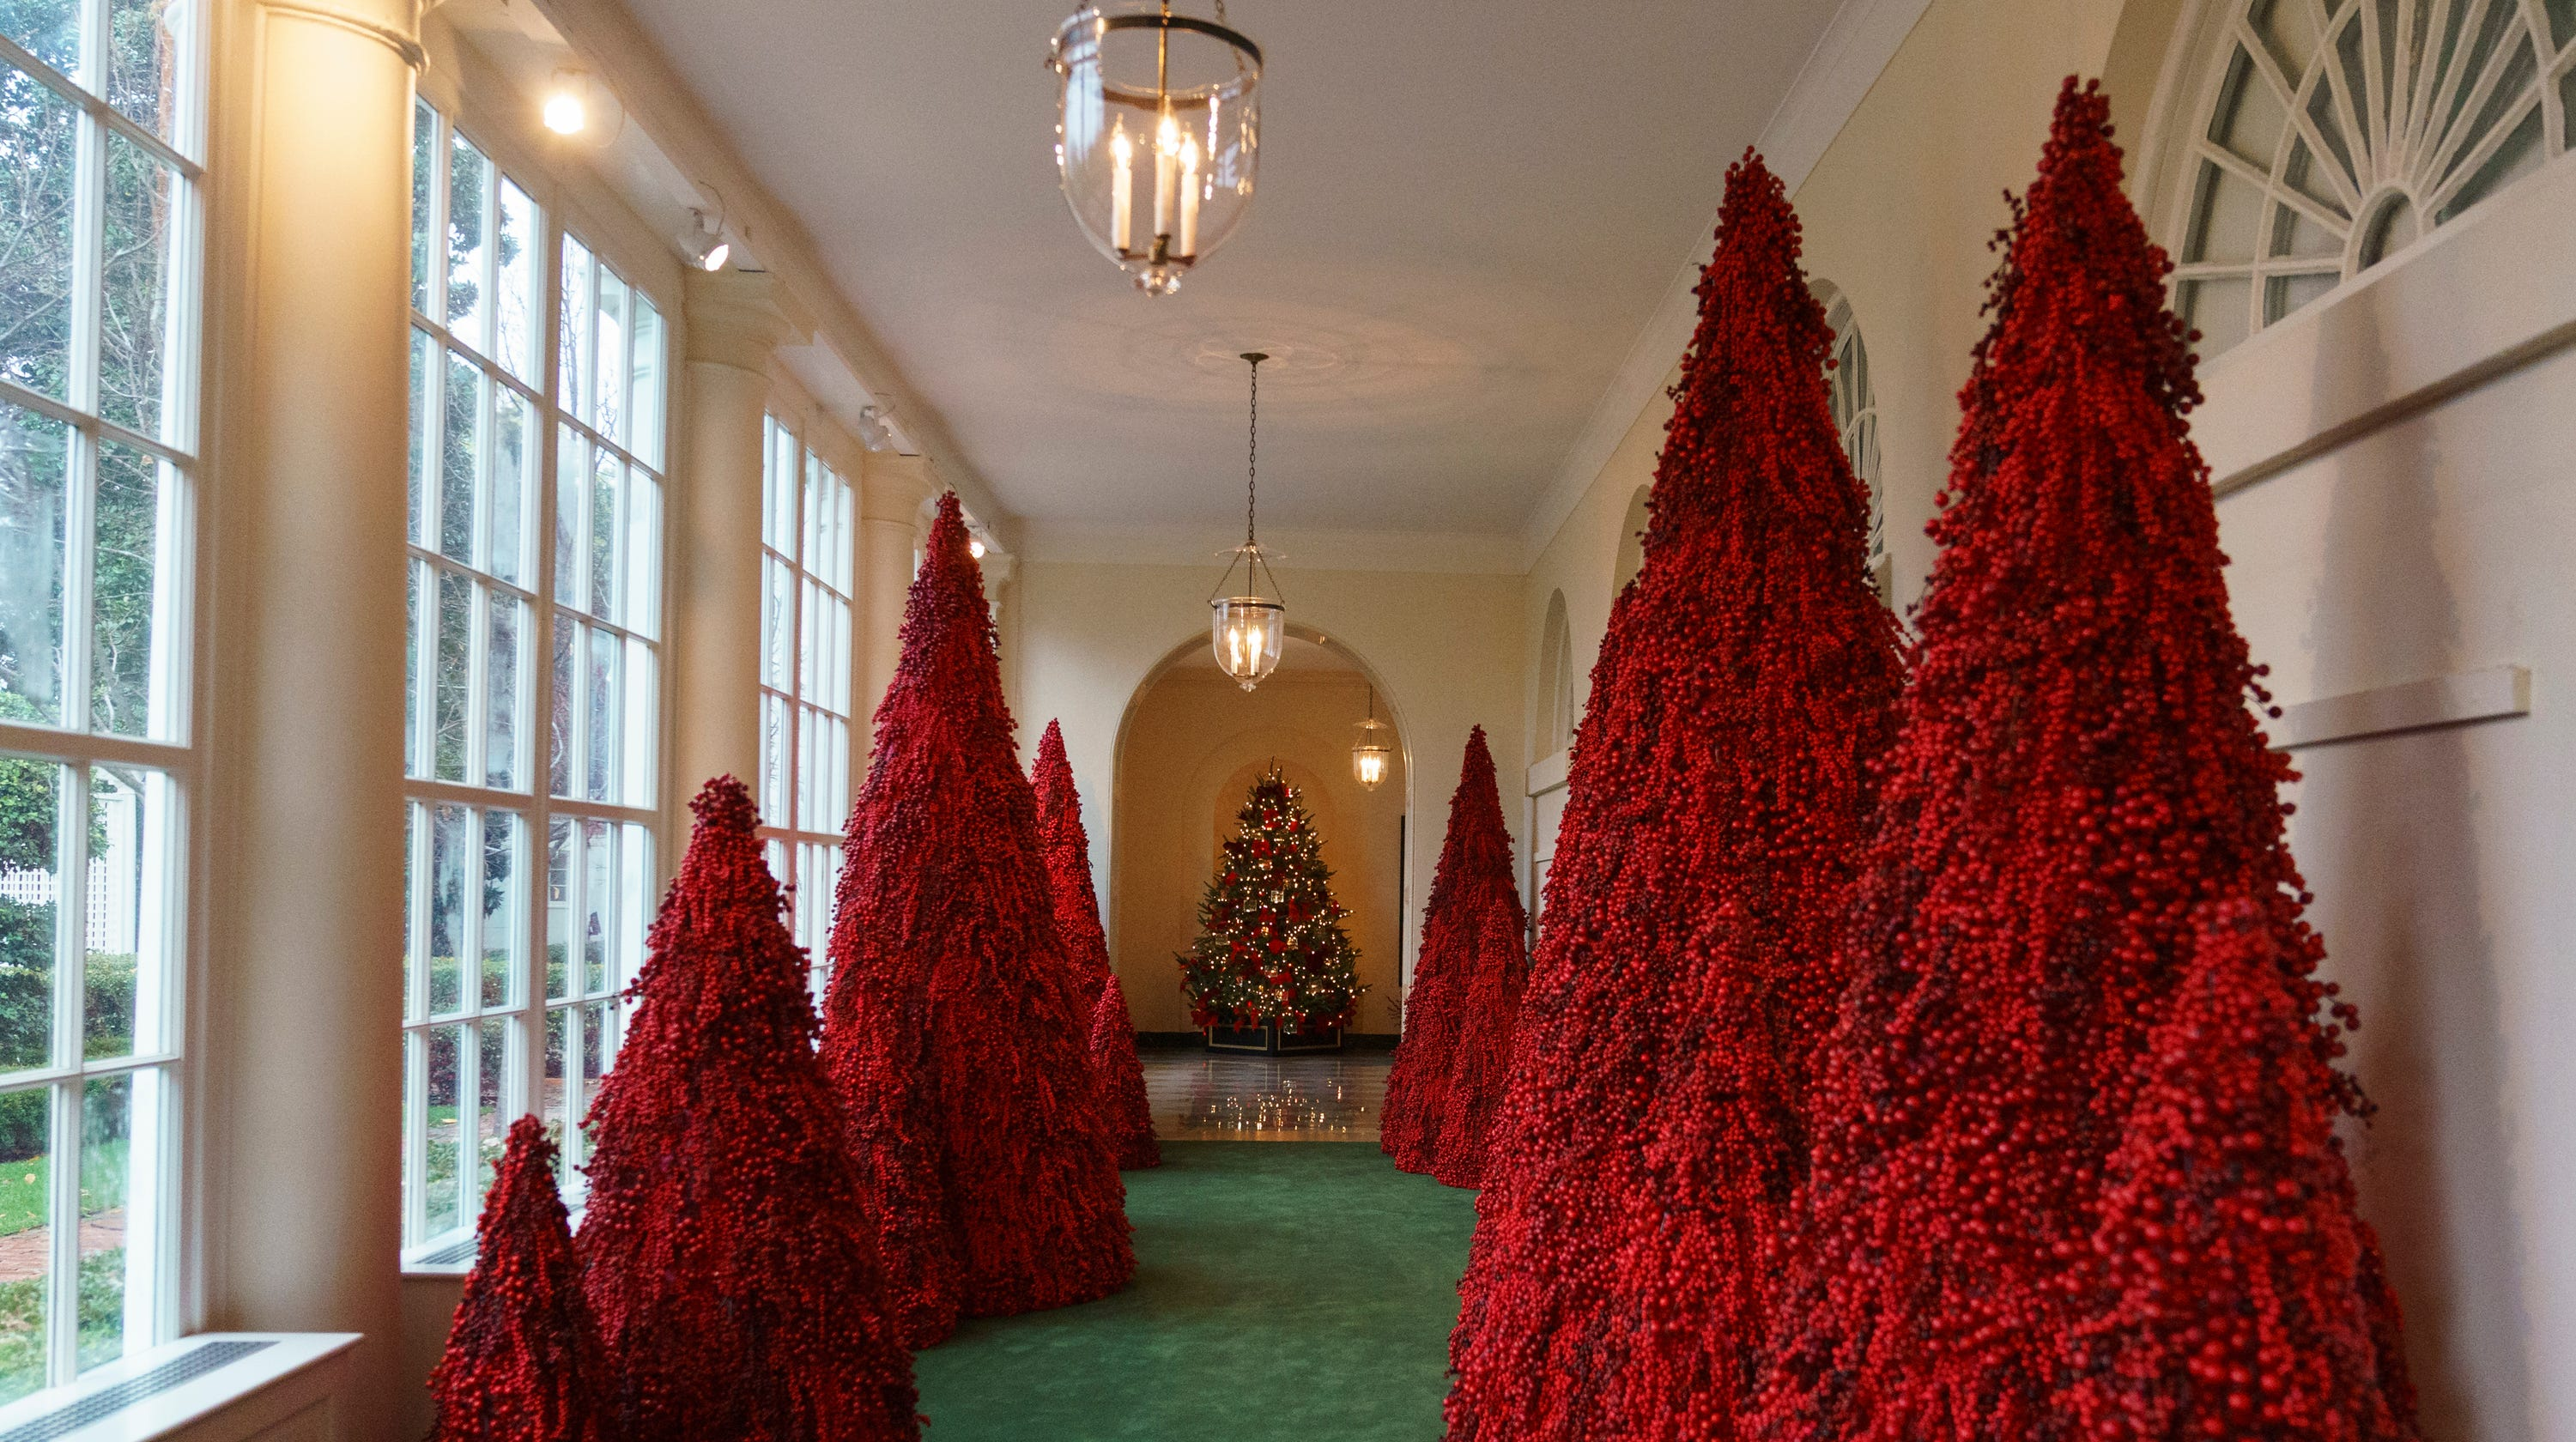 trumps red christmas trees have twitter crying handmaids tale